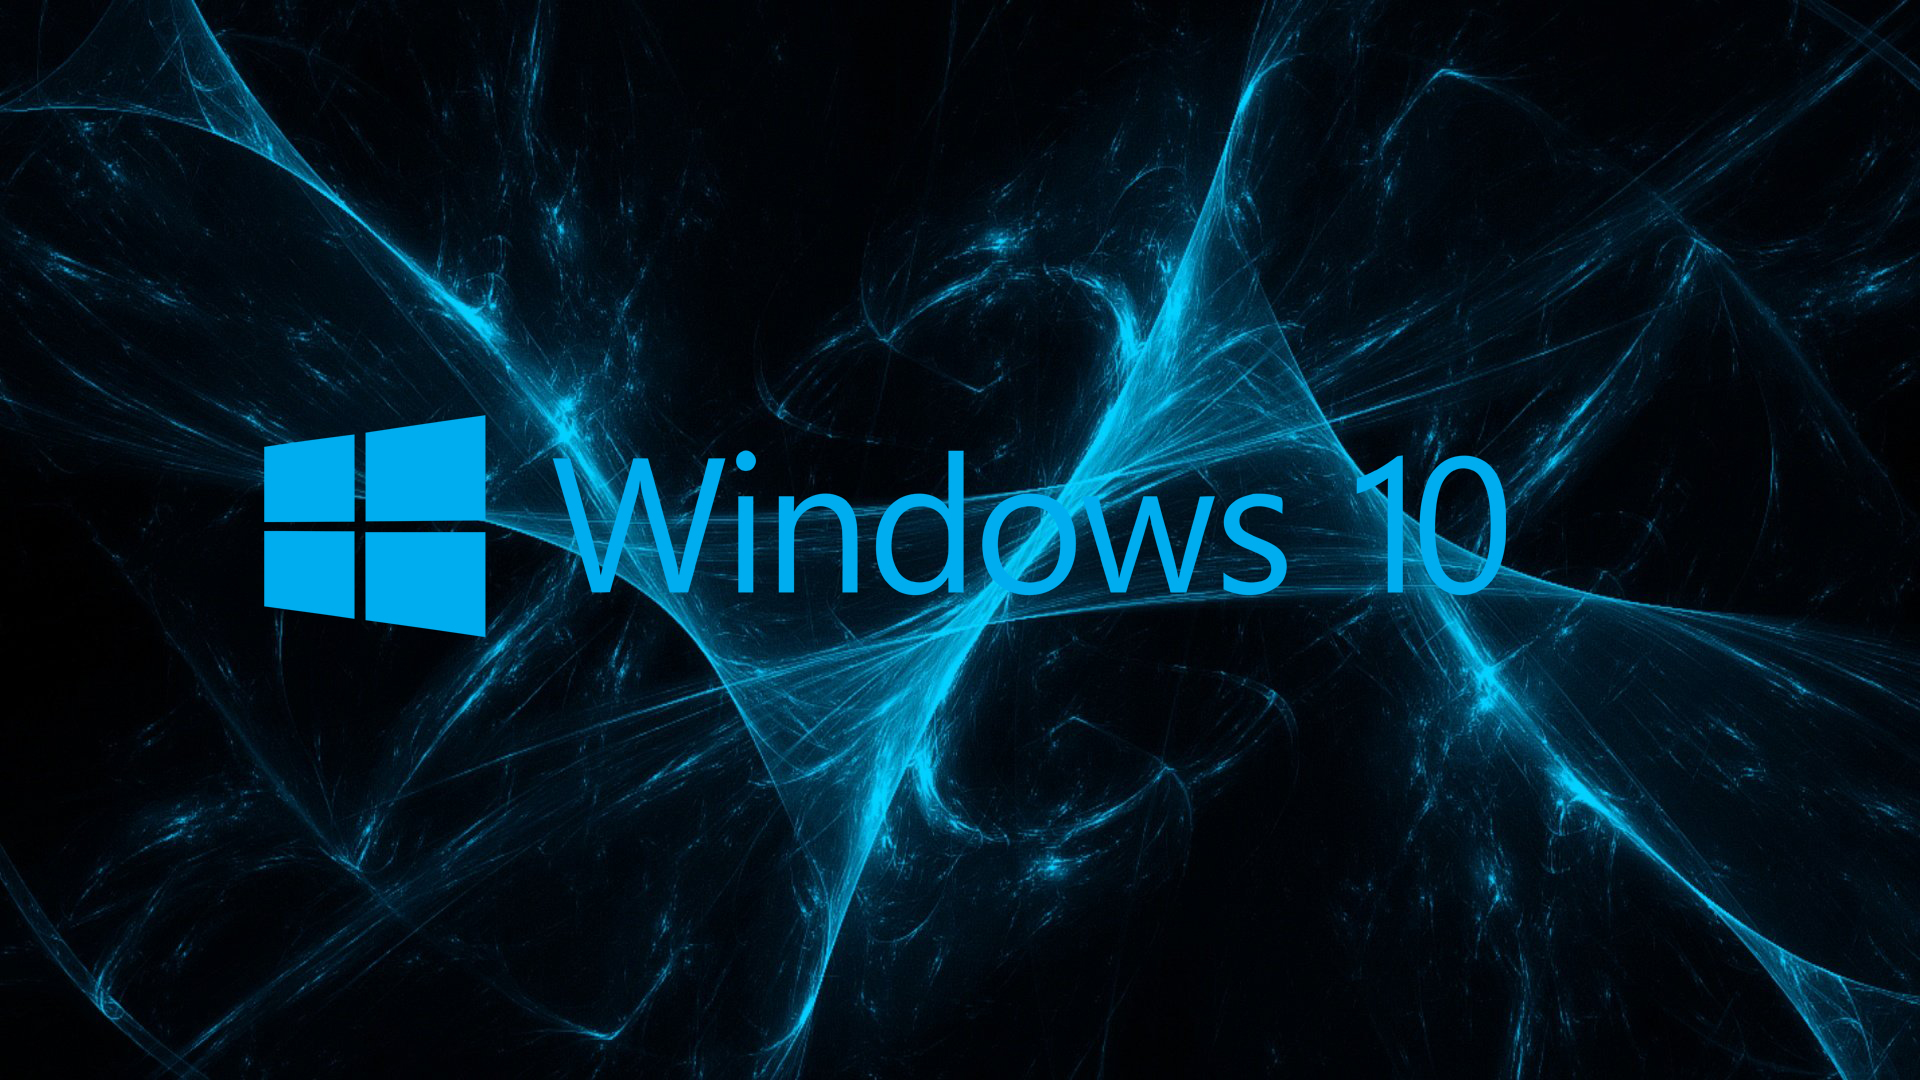 07 of 10 Abstract Windows 10 Background and Logo with Blue ...